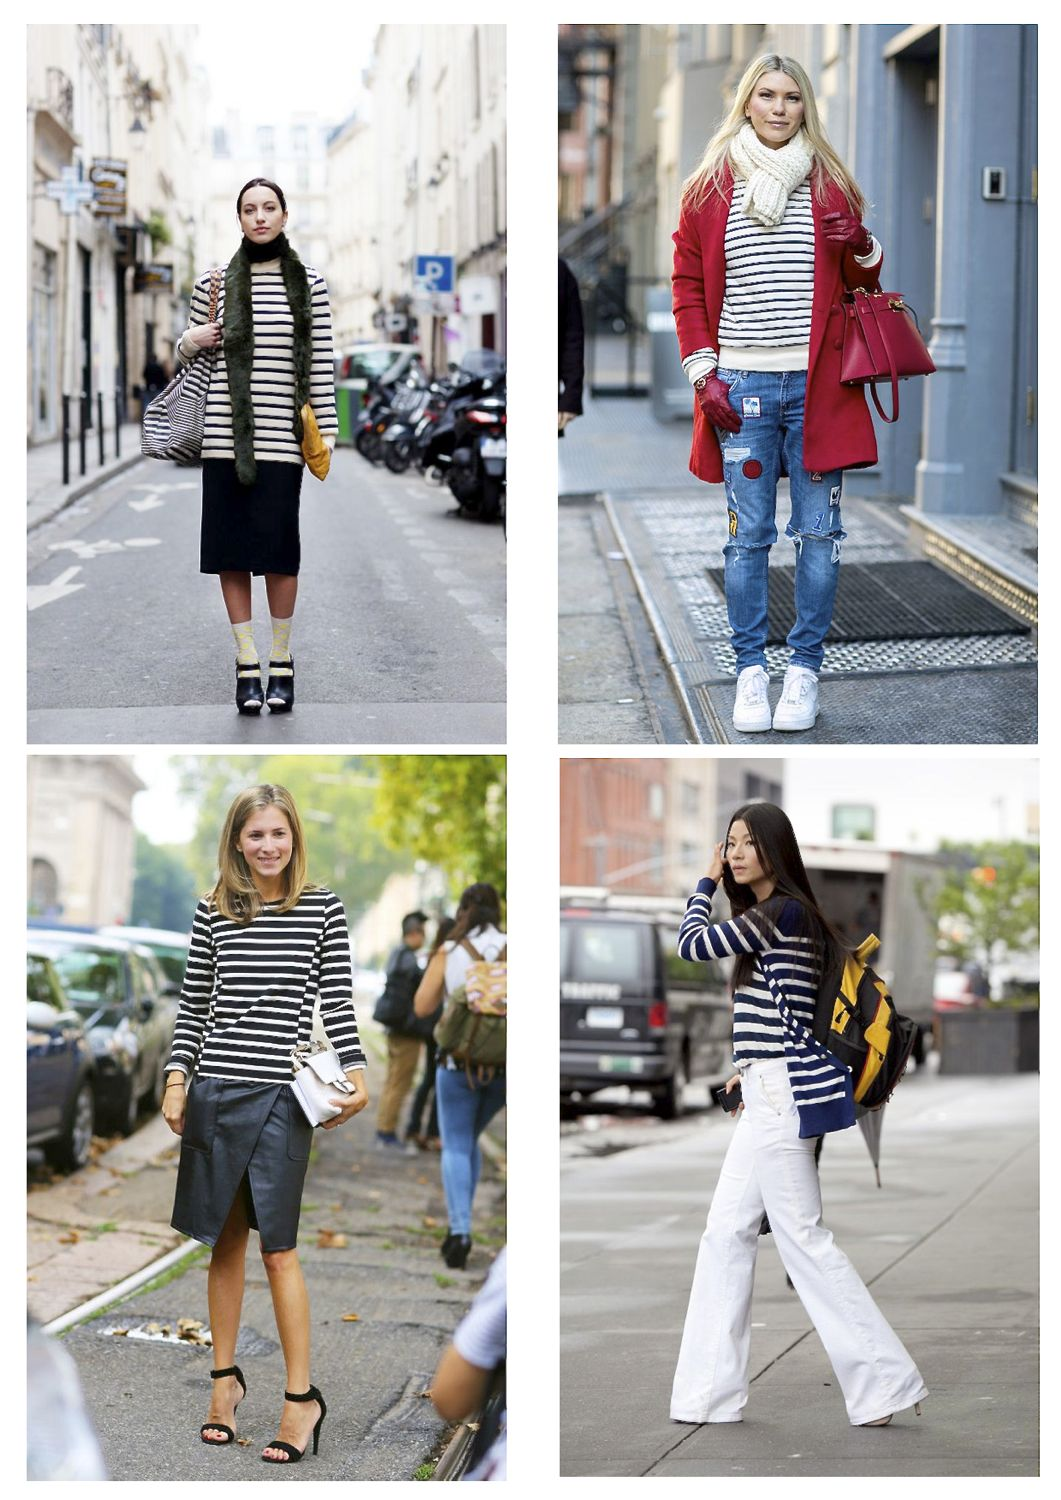 how-to-wear-a-breton-top-street-style-how-to-wear-a-striped-top